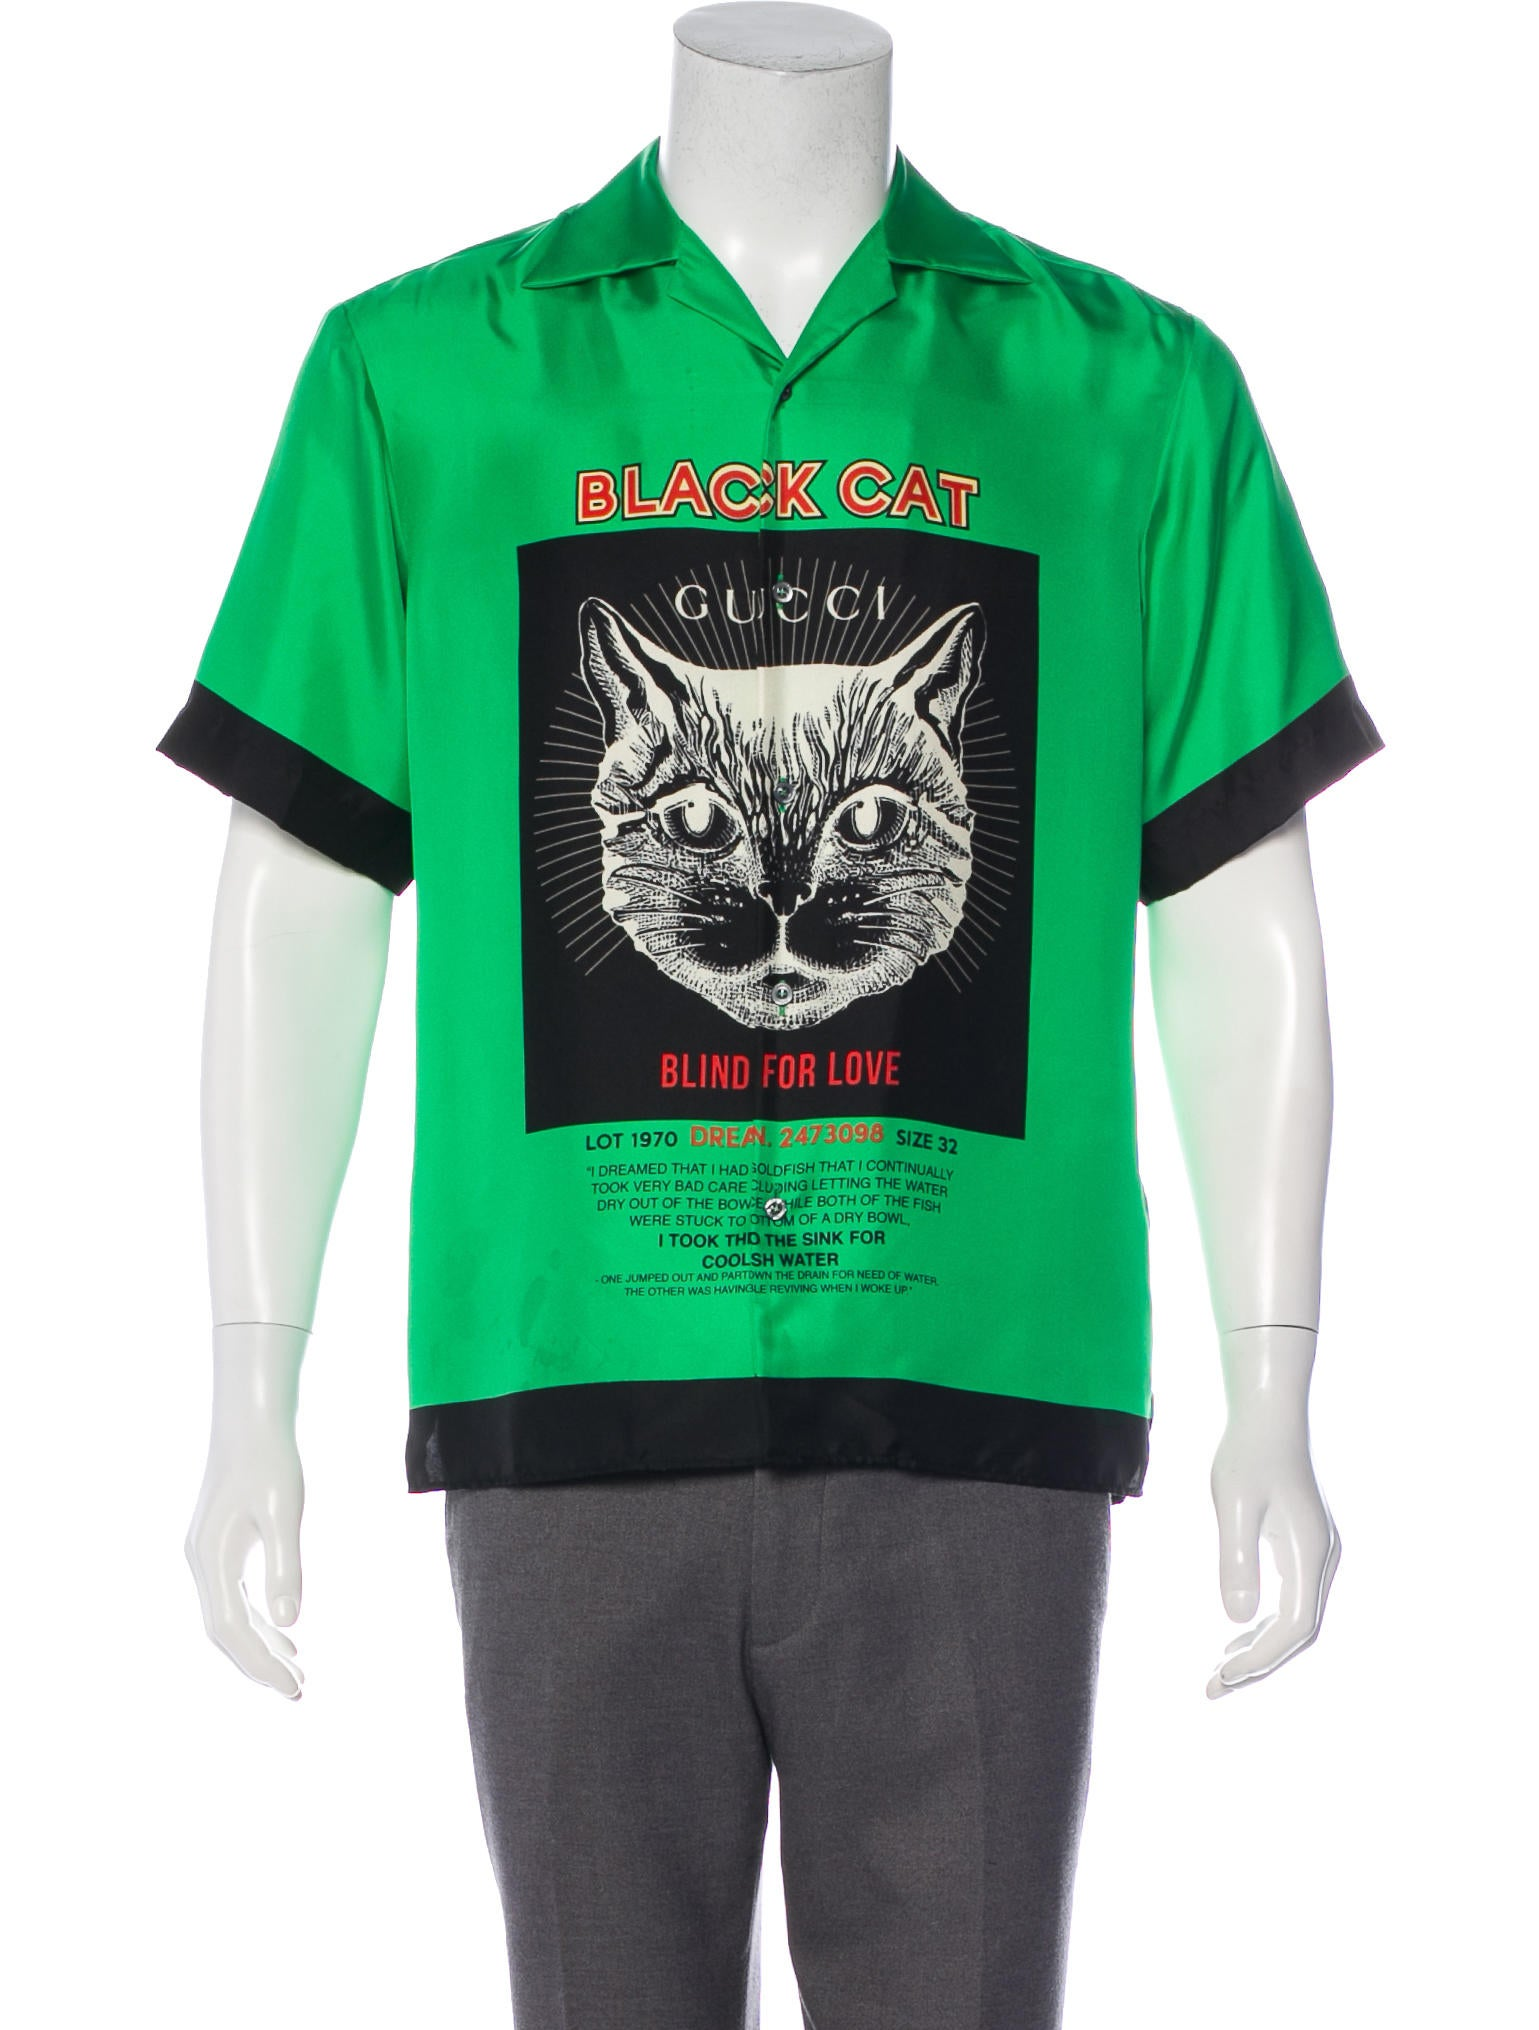 5a822d14151 Gucci 2018 Black Cat Silk Bowling Shirt - Clothing - GUC294703